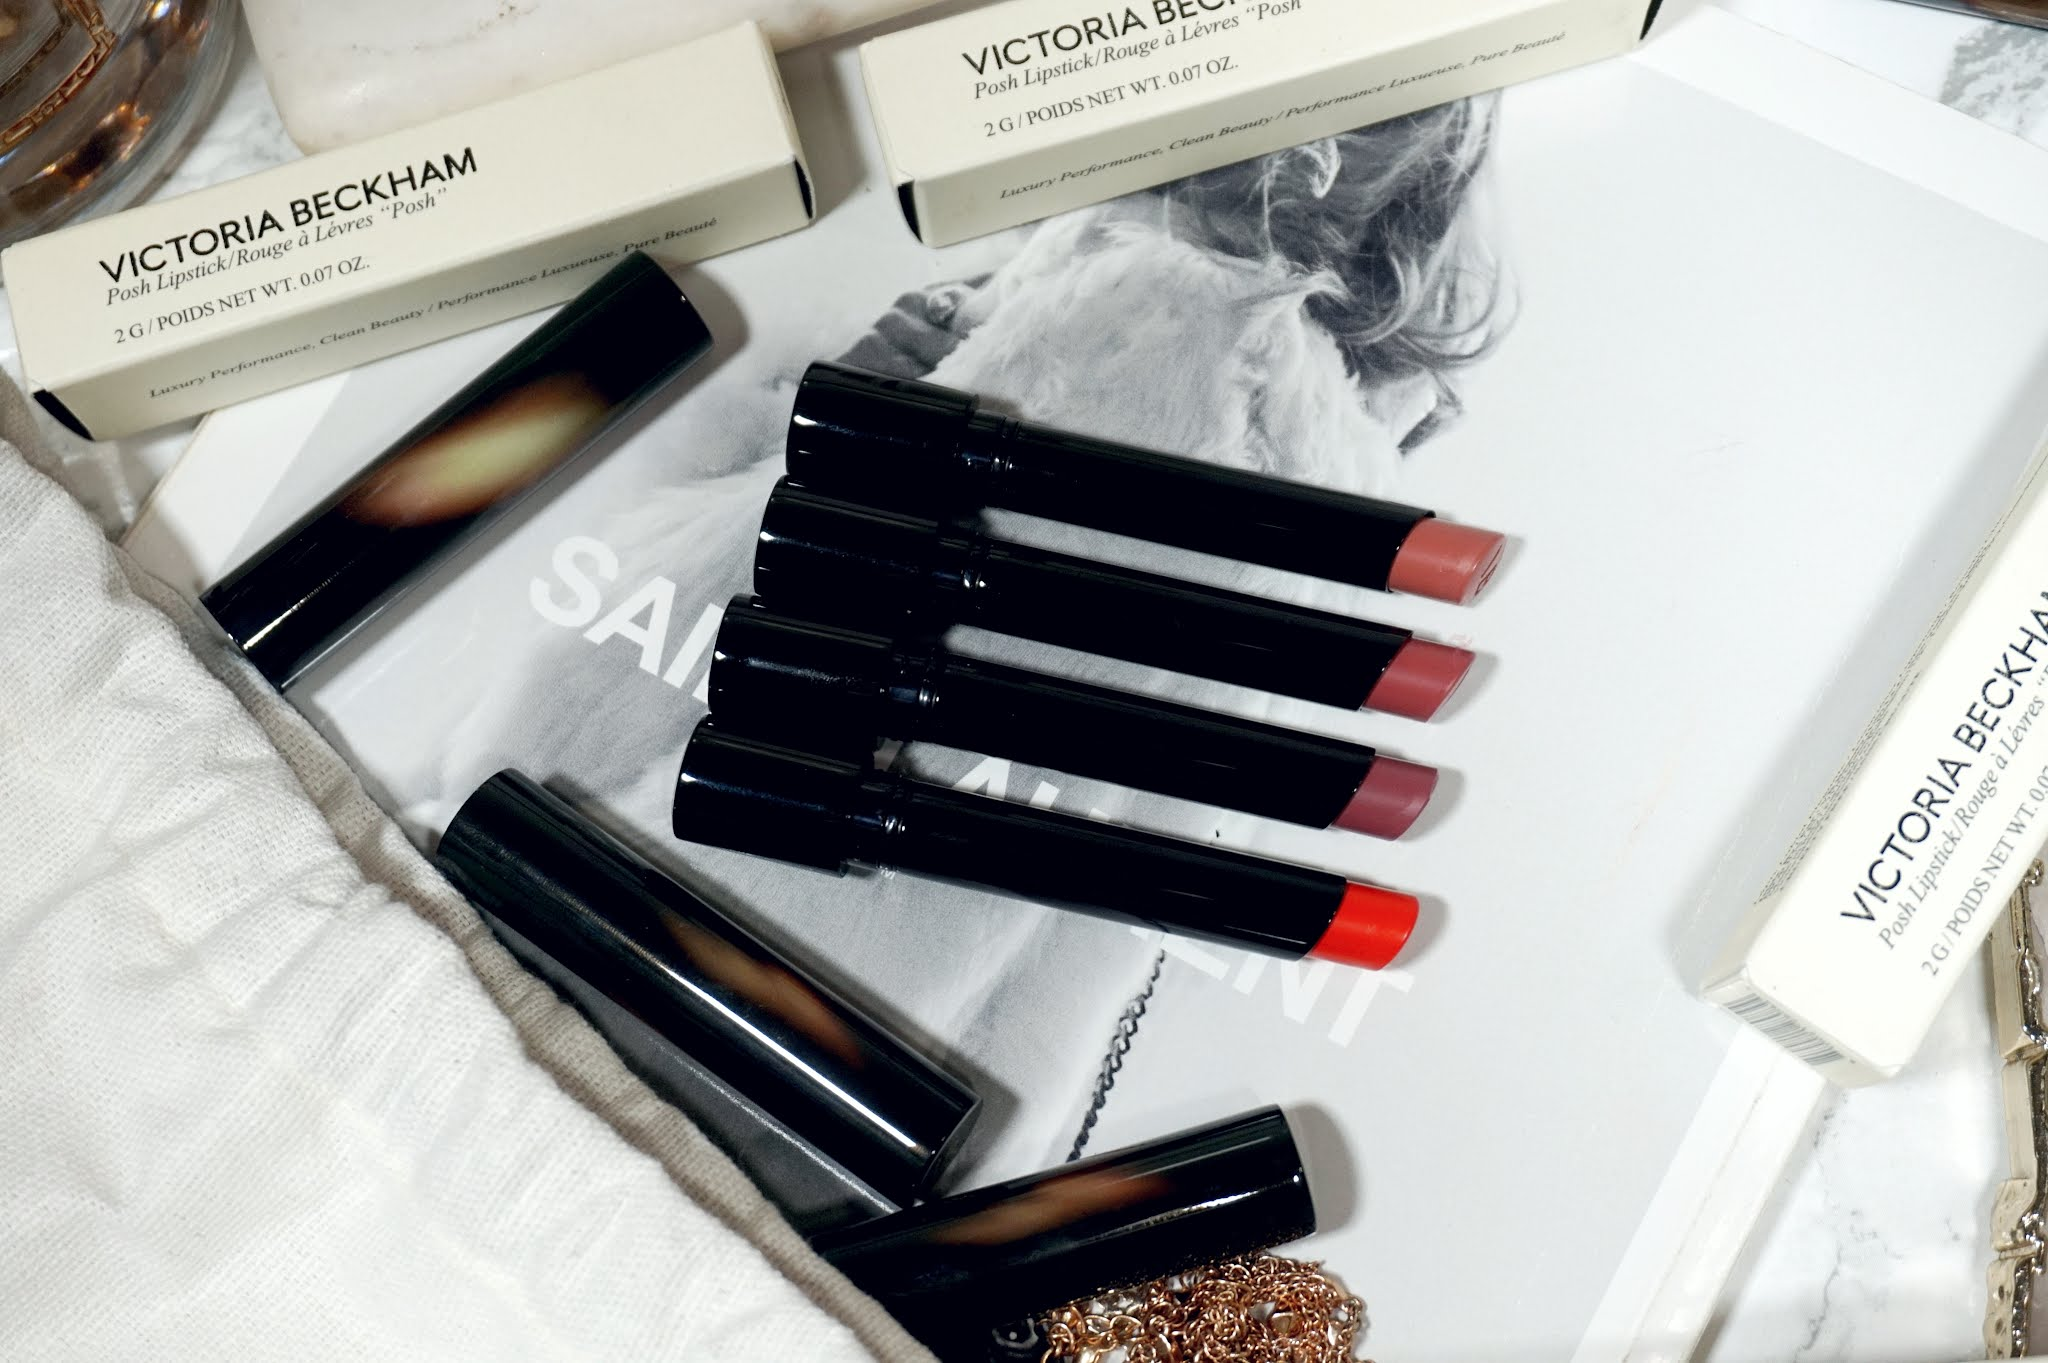 Victoria Beckham Beauty Posh Lipstick (2021 Release) Review and Swatches